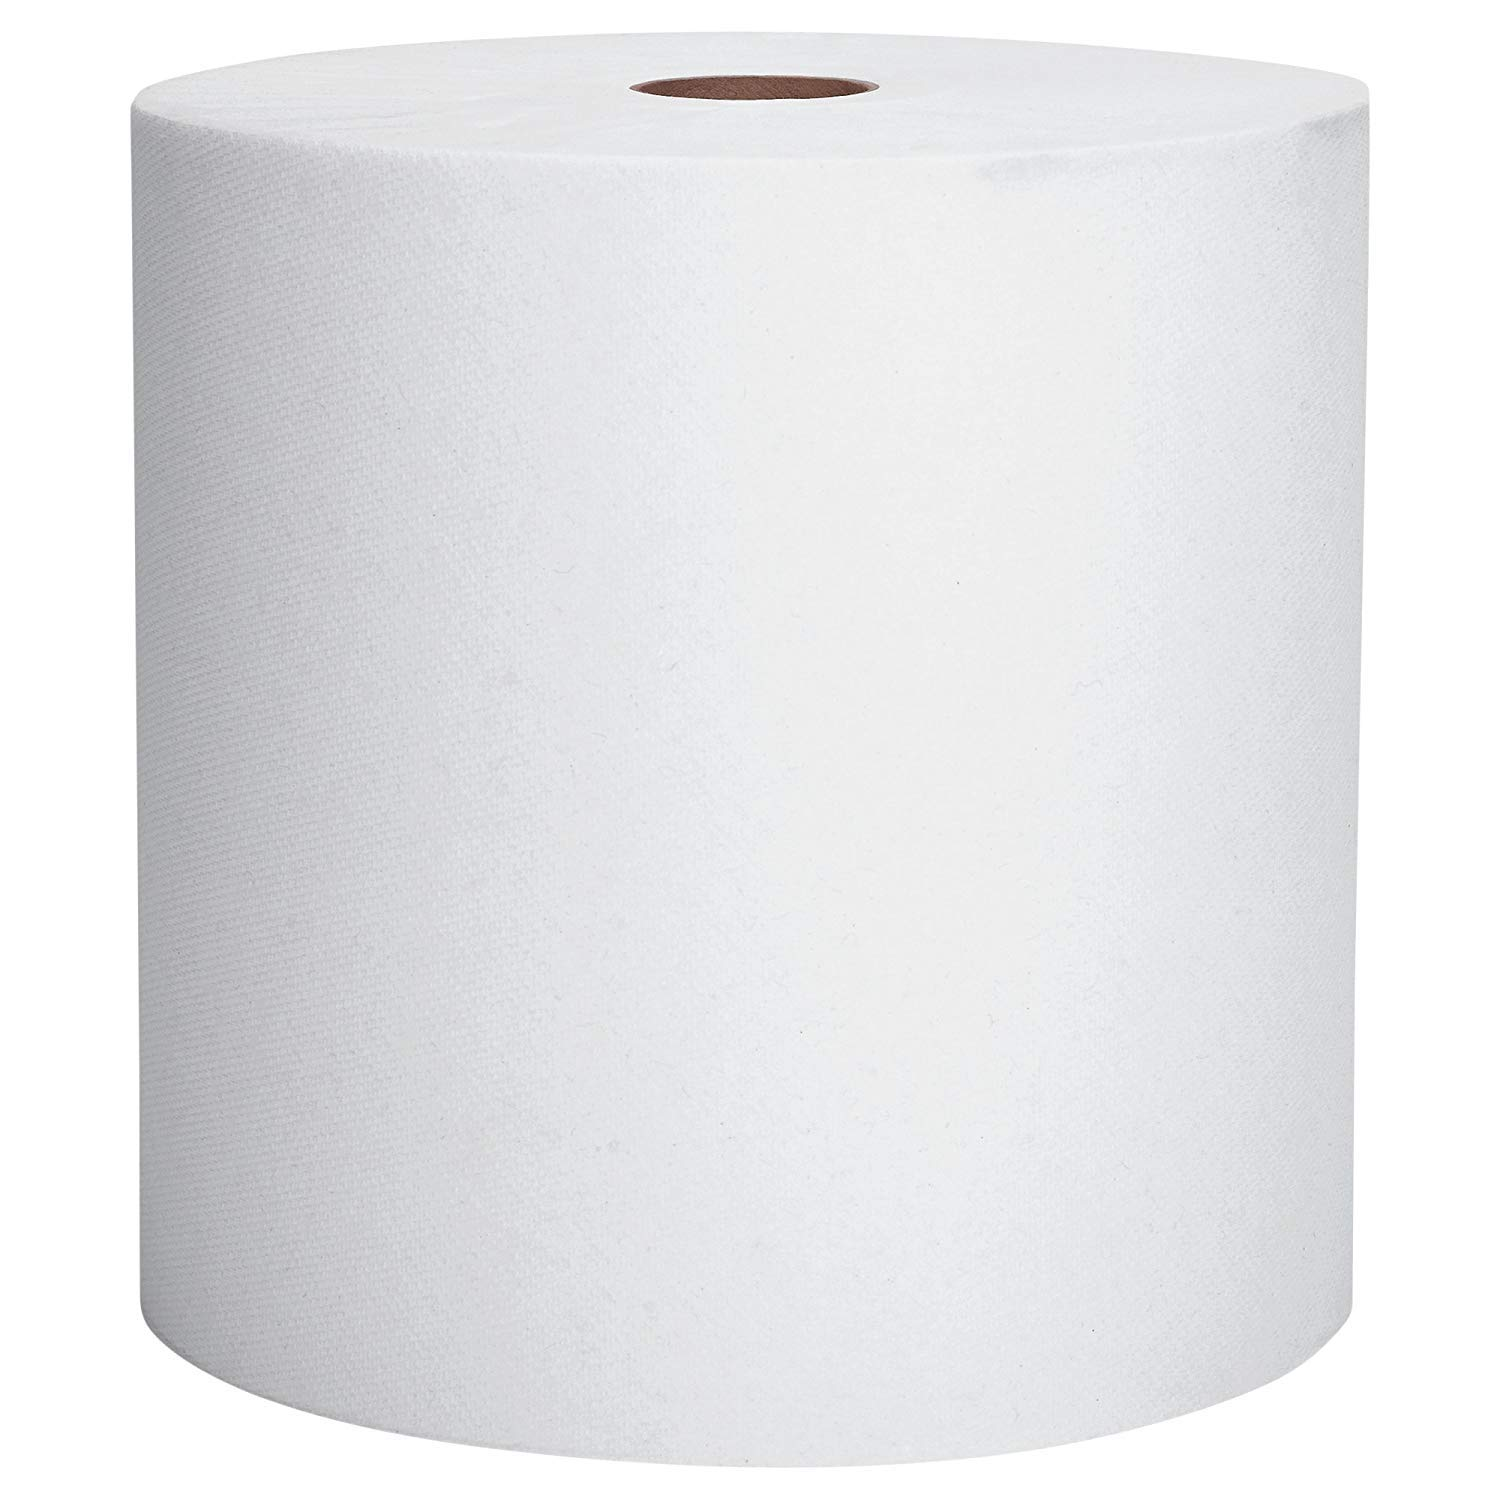 Kimberly-Clark Professional Scott Essential High Capacity Hard Roll Paper Towels (01005), White, 1000' / Roll, 6 Paper Towel Rolls/Convenience Case (12 Rolls)